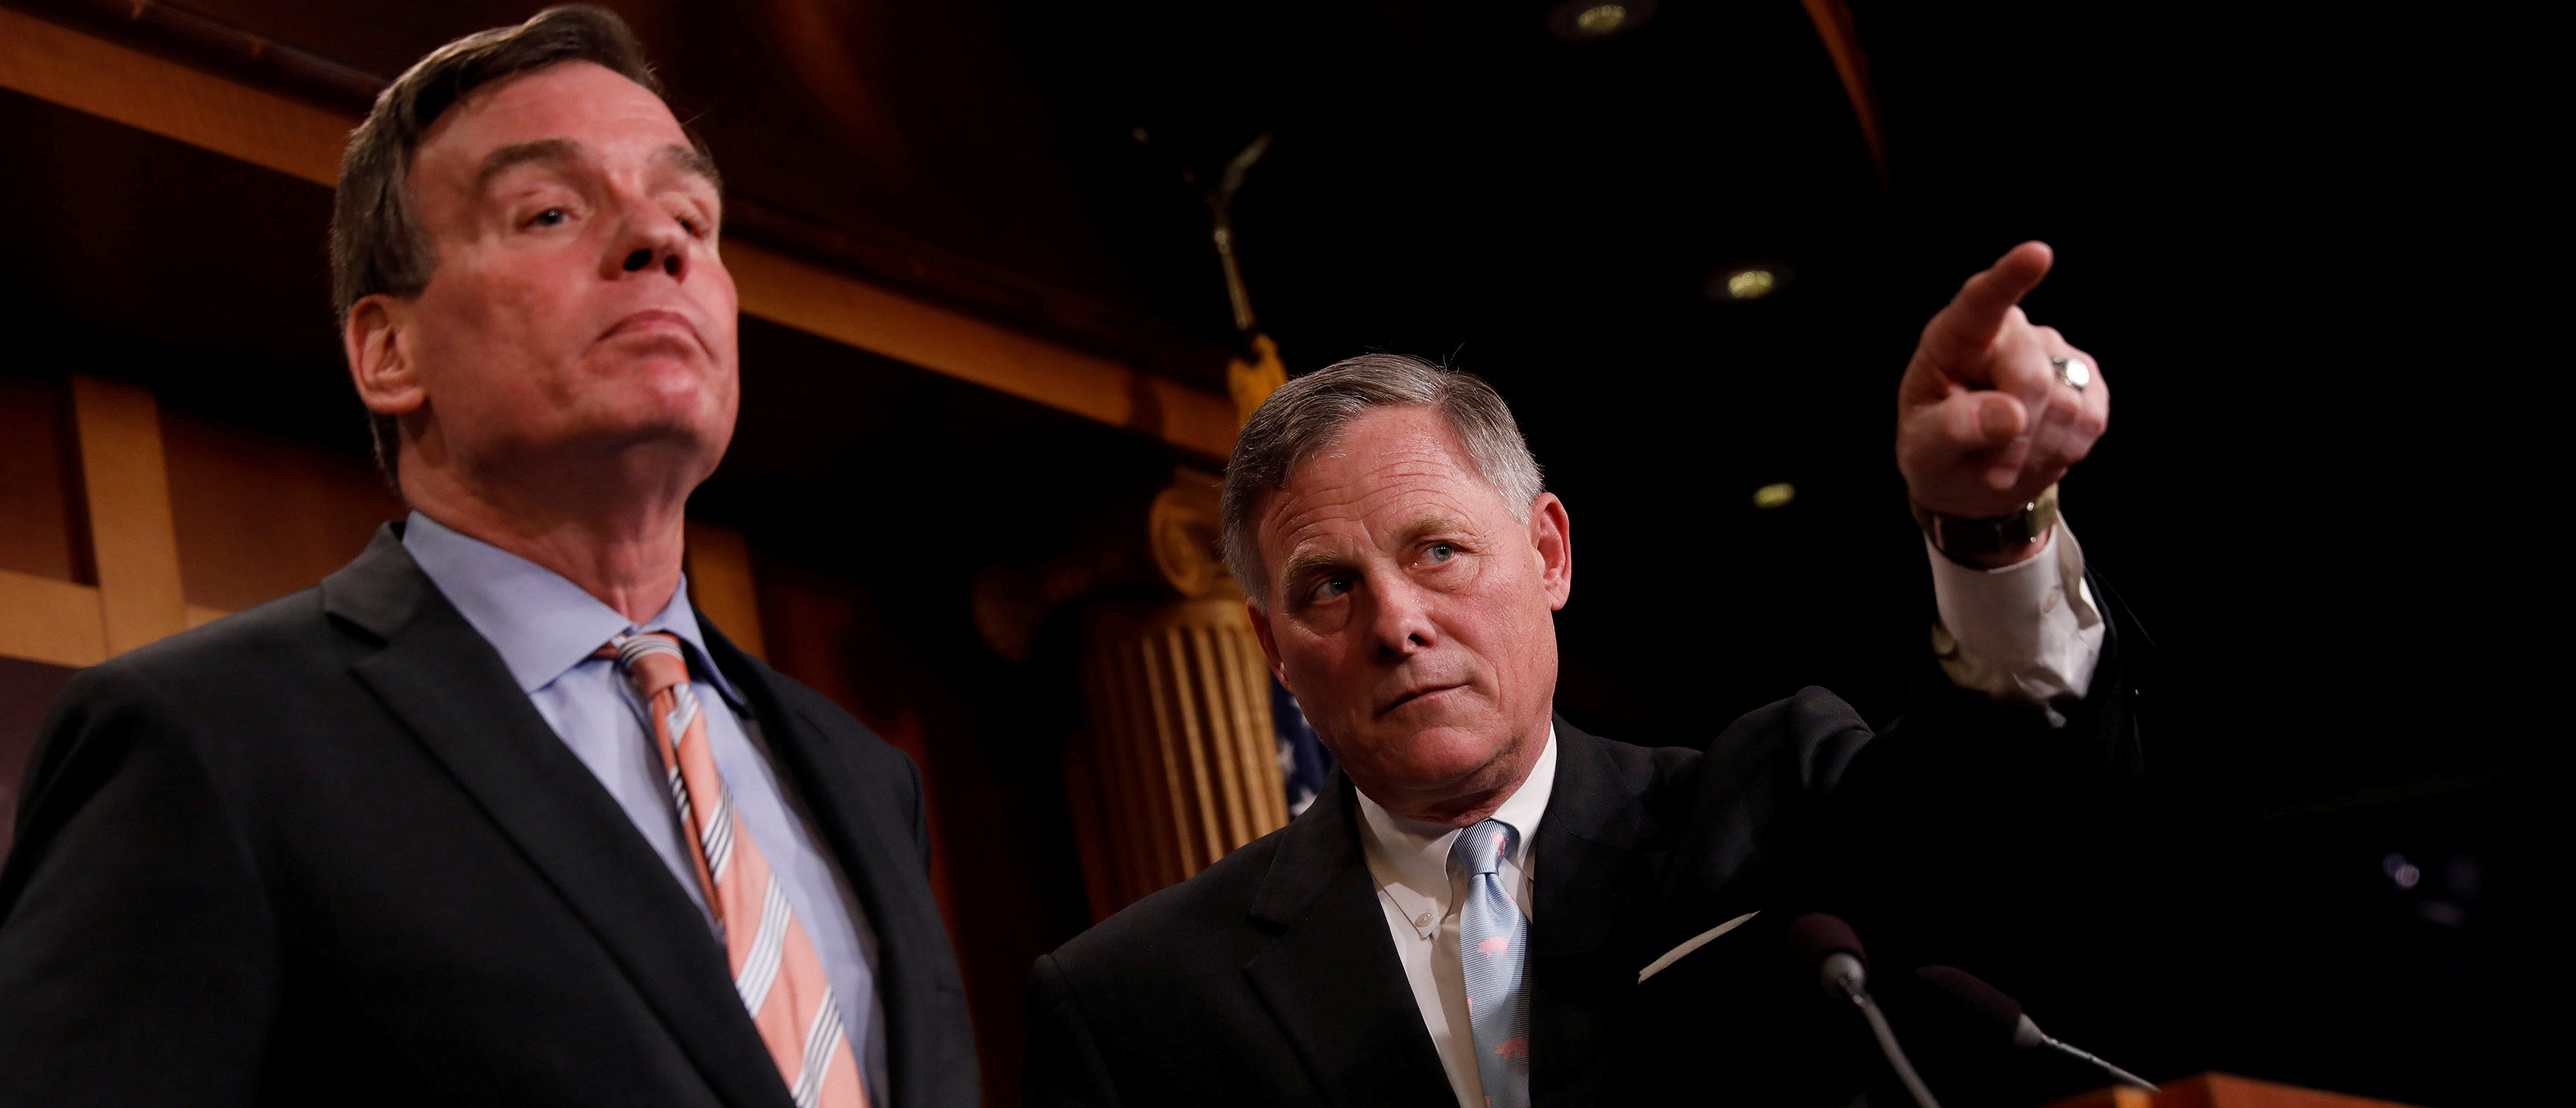 Senate Intelligence Committee Chairman Sen. Richard Burr (R-NC), accompanied by Senator Mark Warner (D-VA), vice chairman of the committee, speaks at a news conference to discuss their probe of Russian interference in the 2016 election on Capitol Hill in Washington, D.C., March 29, 2017. REUTERS/Aaron P. Bernstein